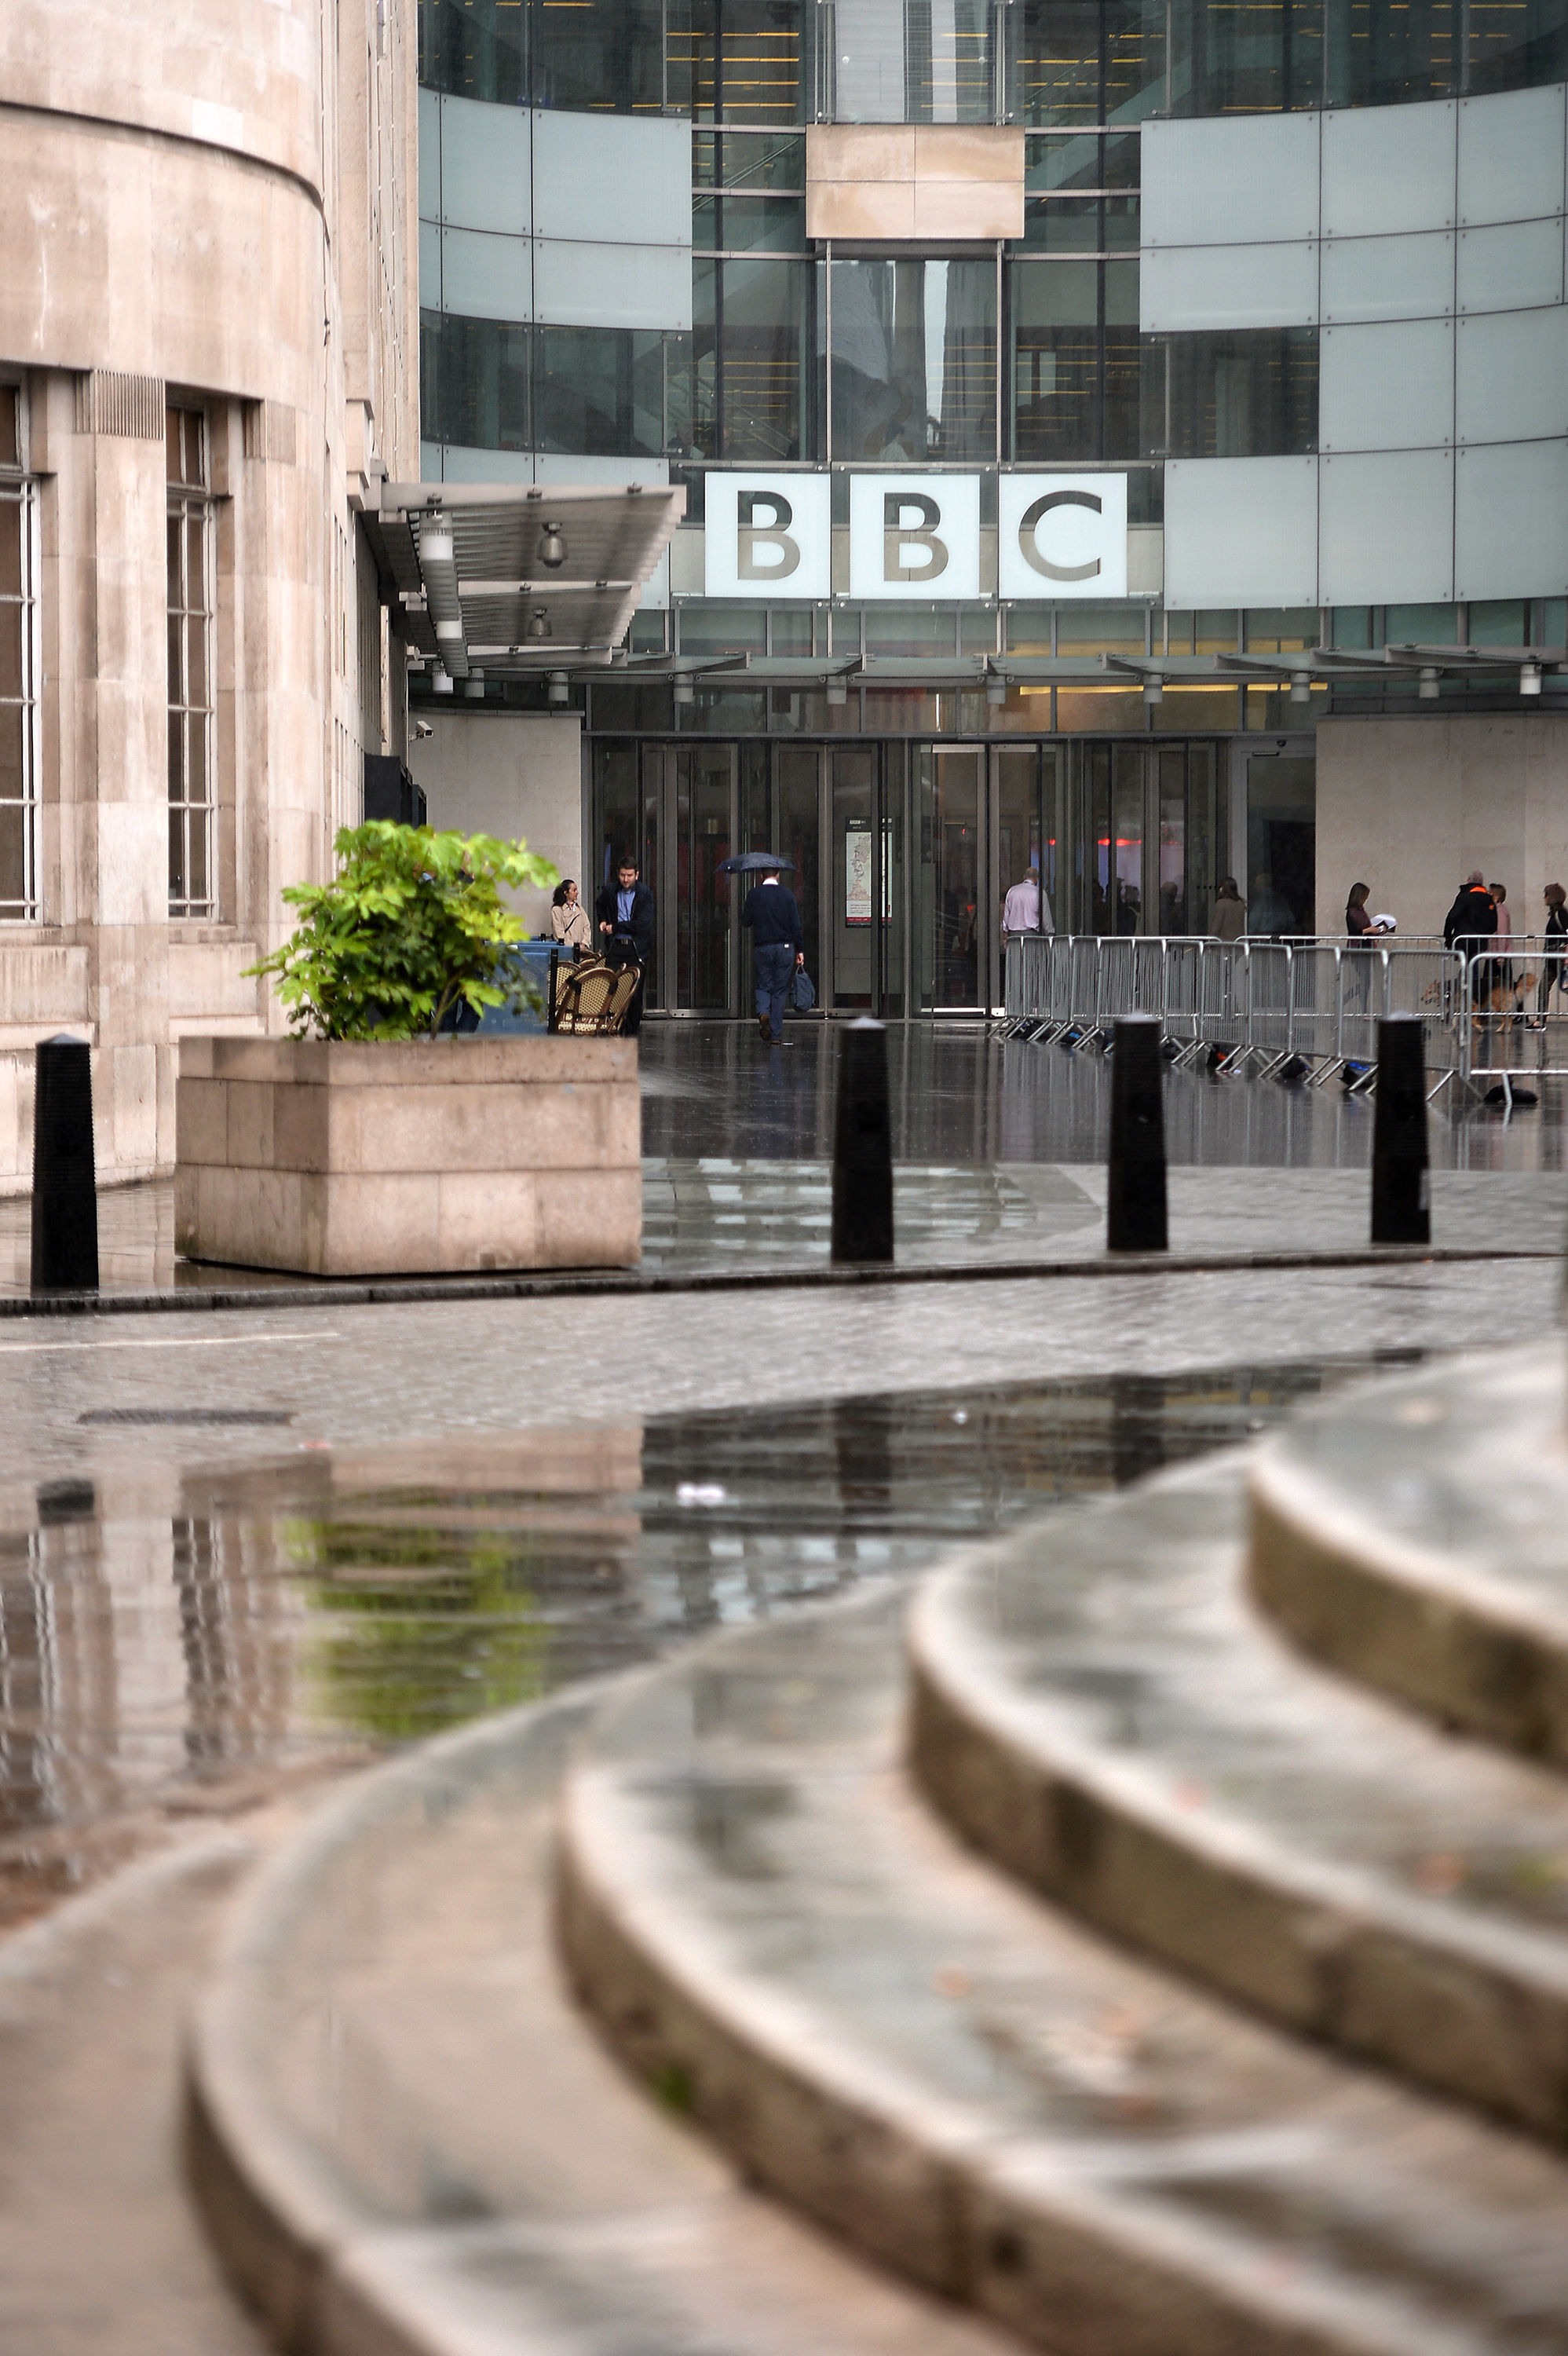 The TV licence has gone up to fund the BBC, but the quality of what's on TV isn't going up with it, says one correspondent